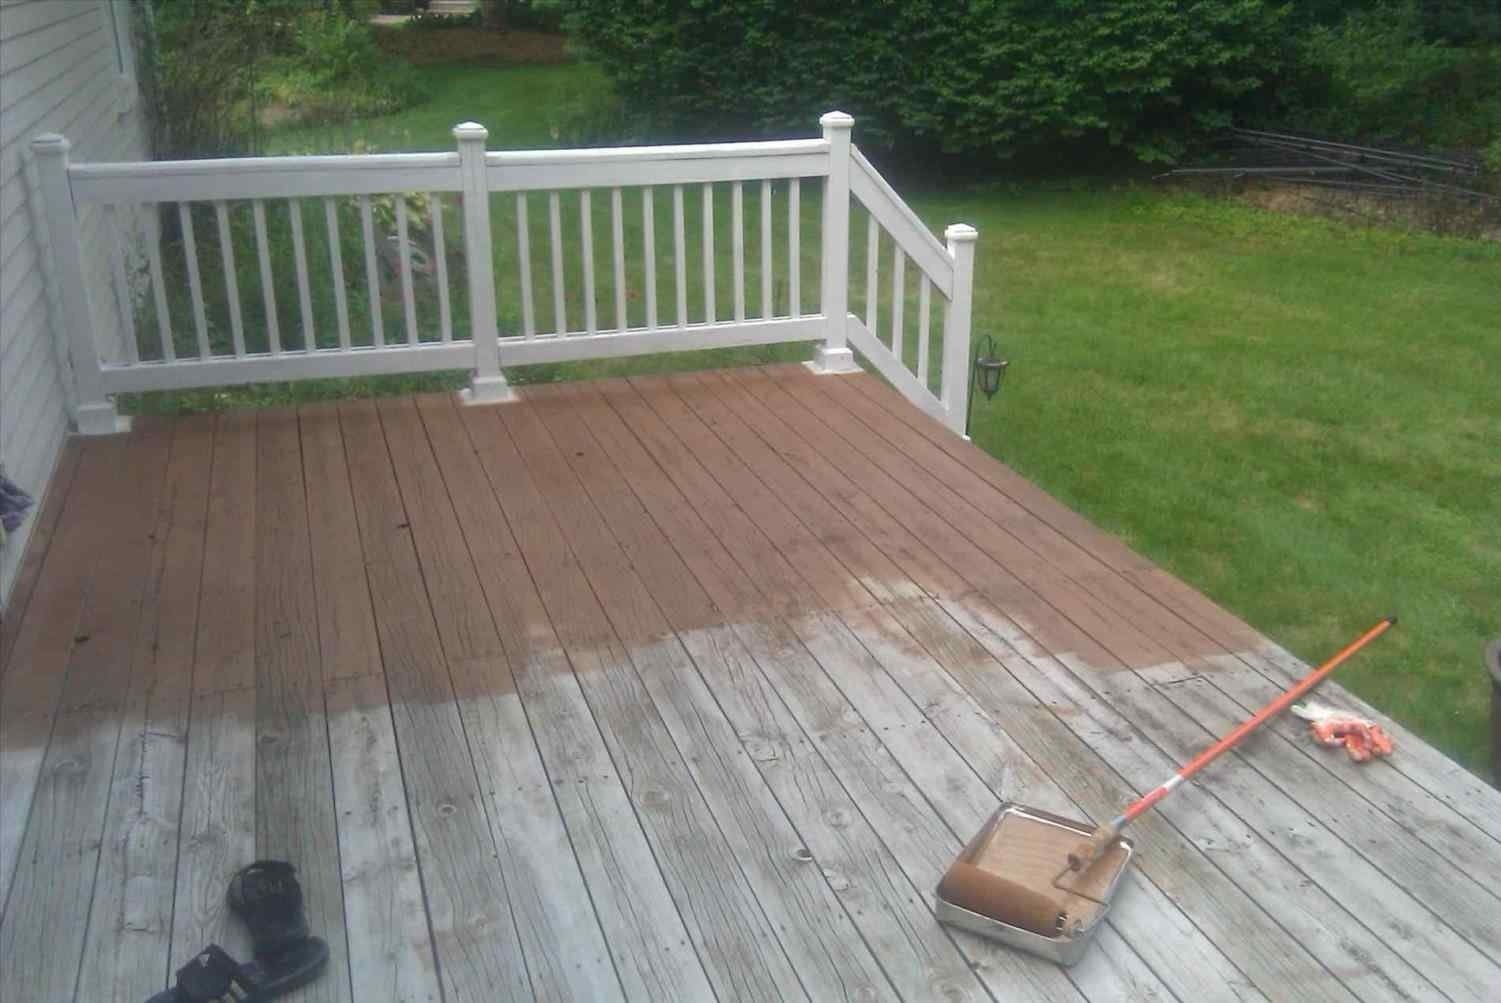 10 Spectacular Two Tone Deck Stain Ideas the images collection of decks decotorhdecotonet two two tone deck 2021